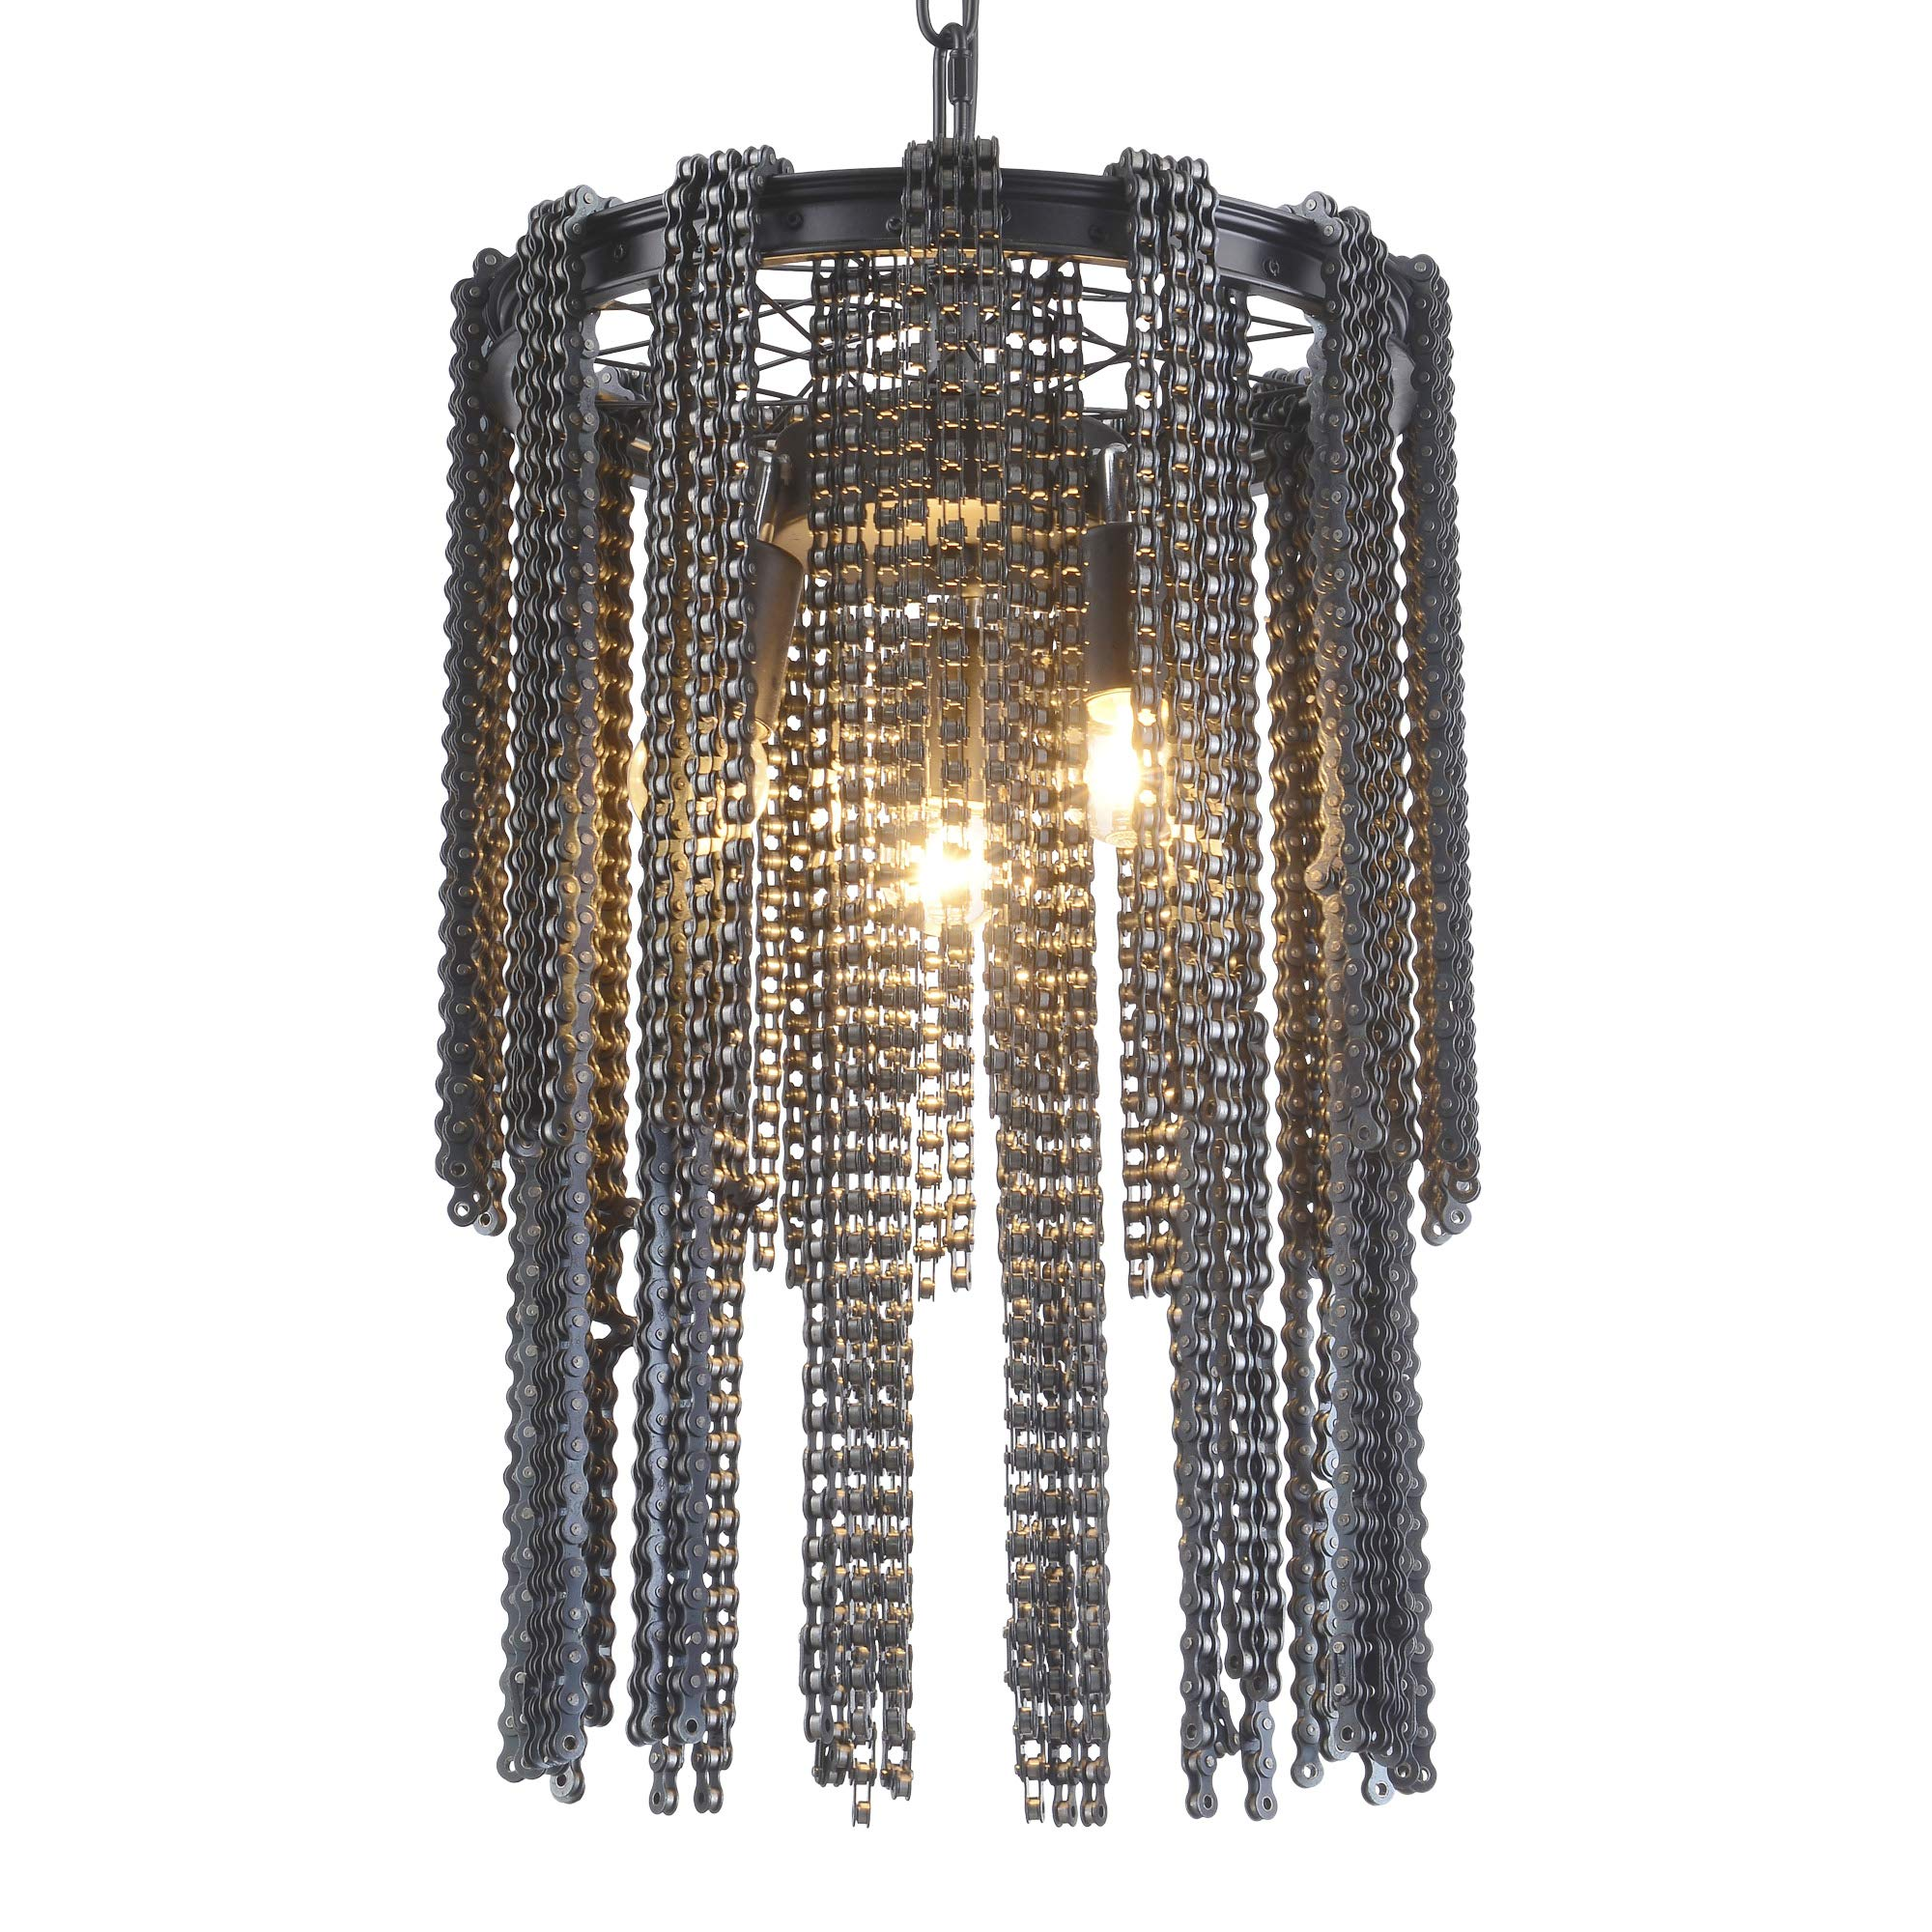 Electro_BP;SZBP1702 Art Retro Vintage Metal Small Chandelier With Bicycle Chain,3 Lights Painted Finish